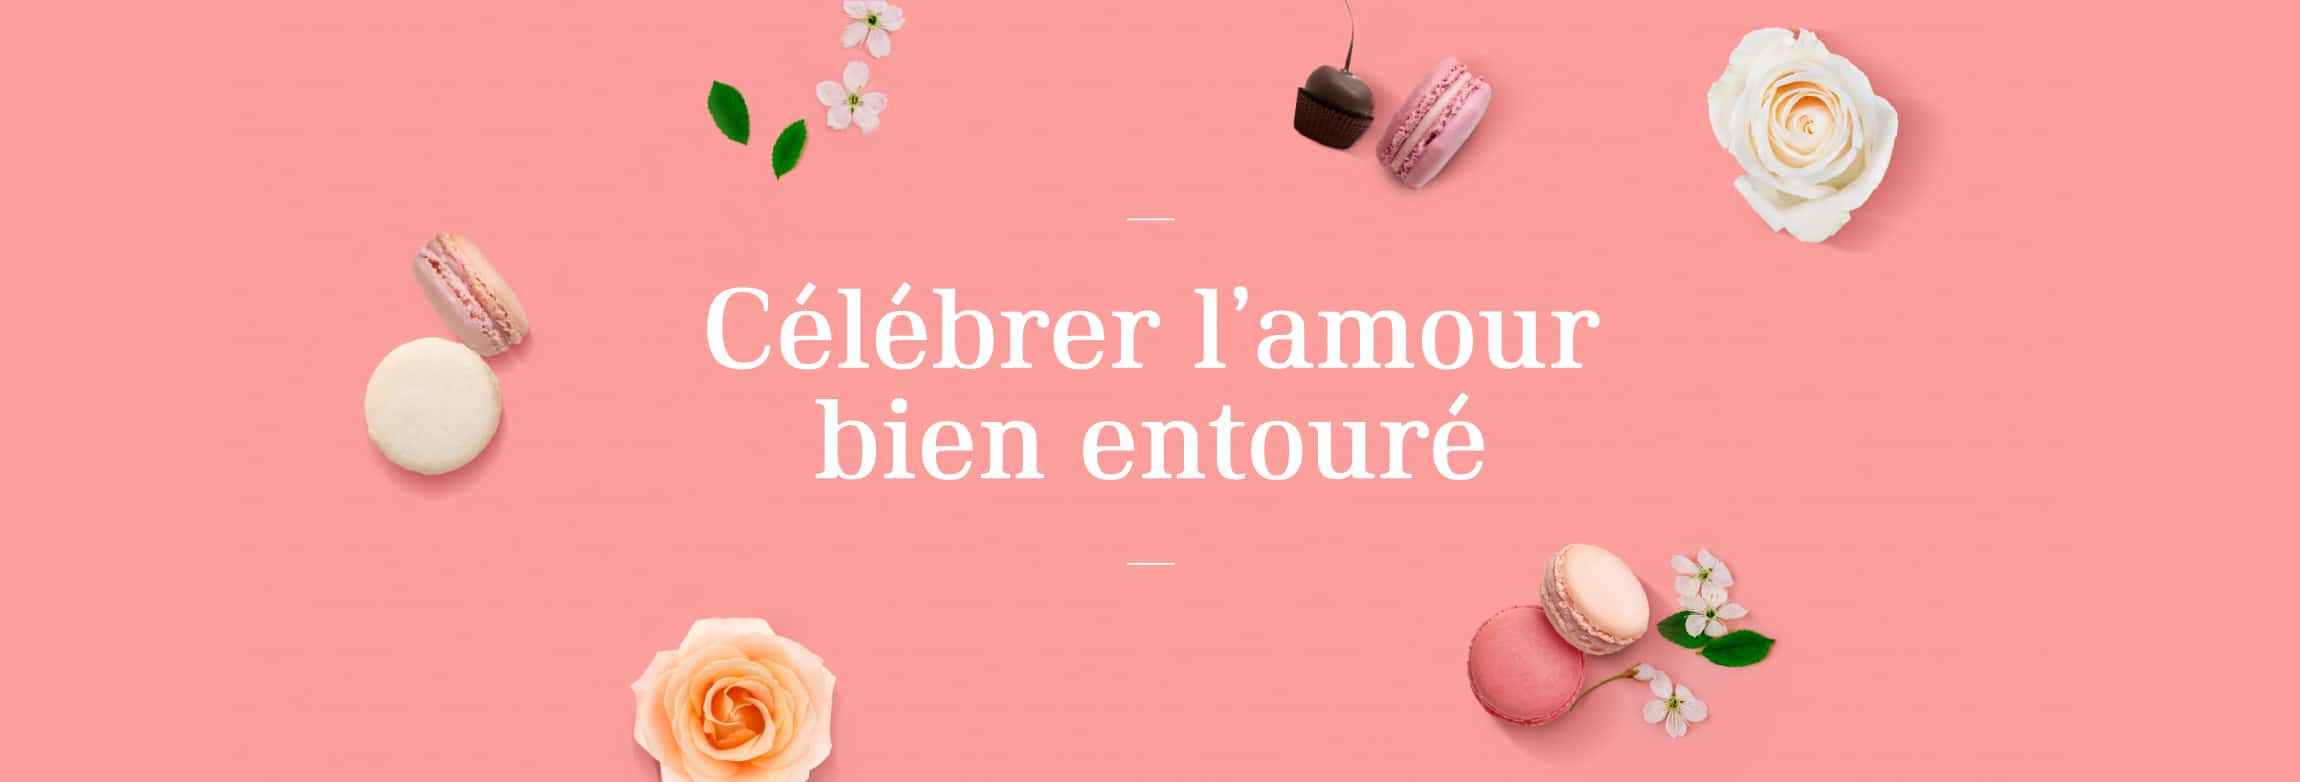 Alimenter l'amour de la table